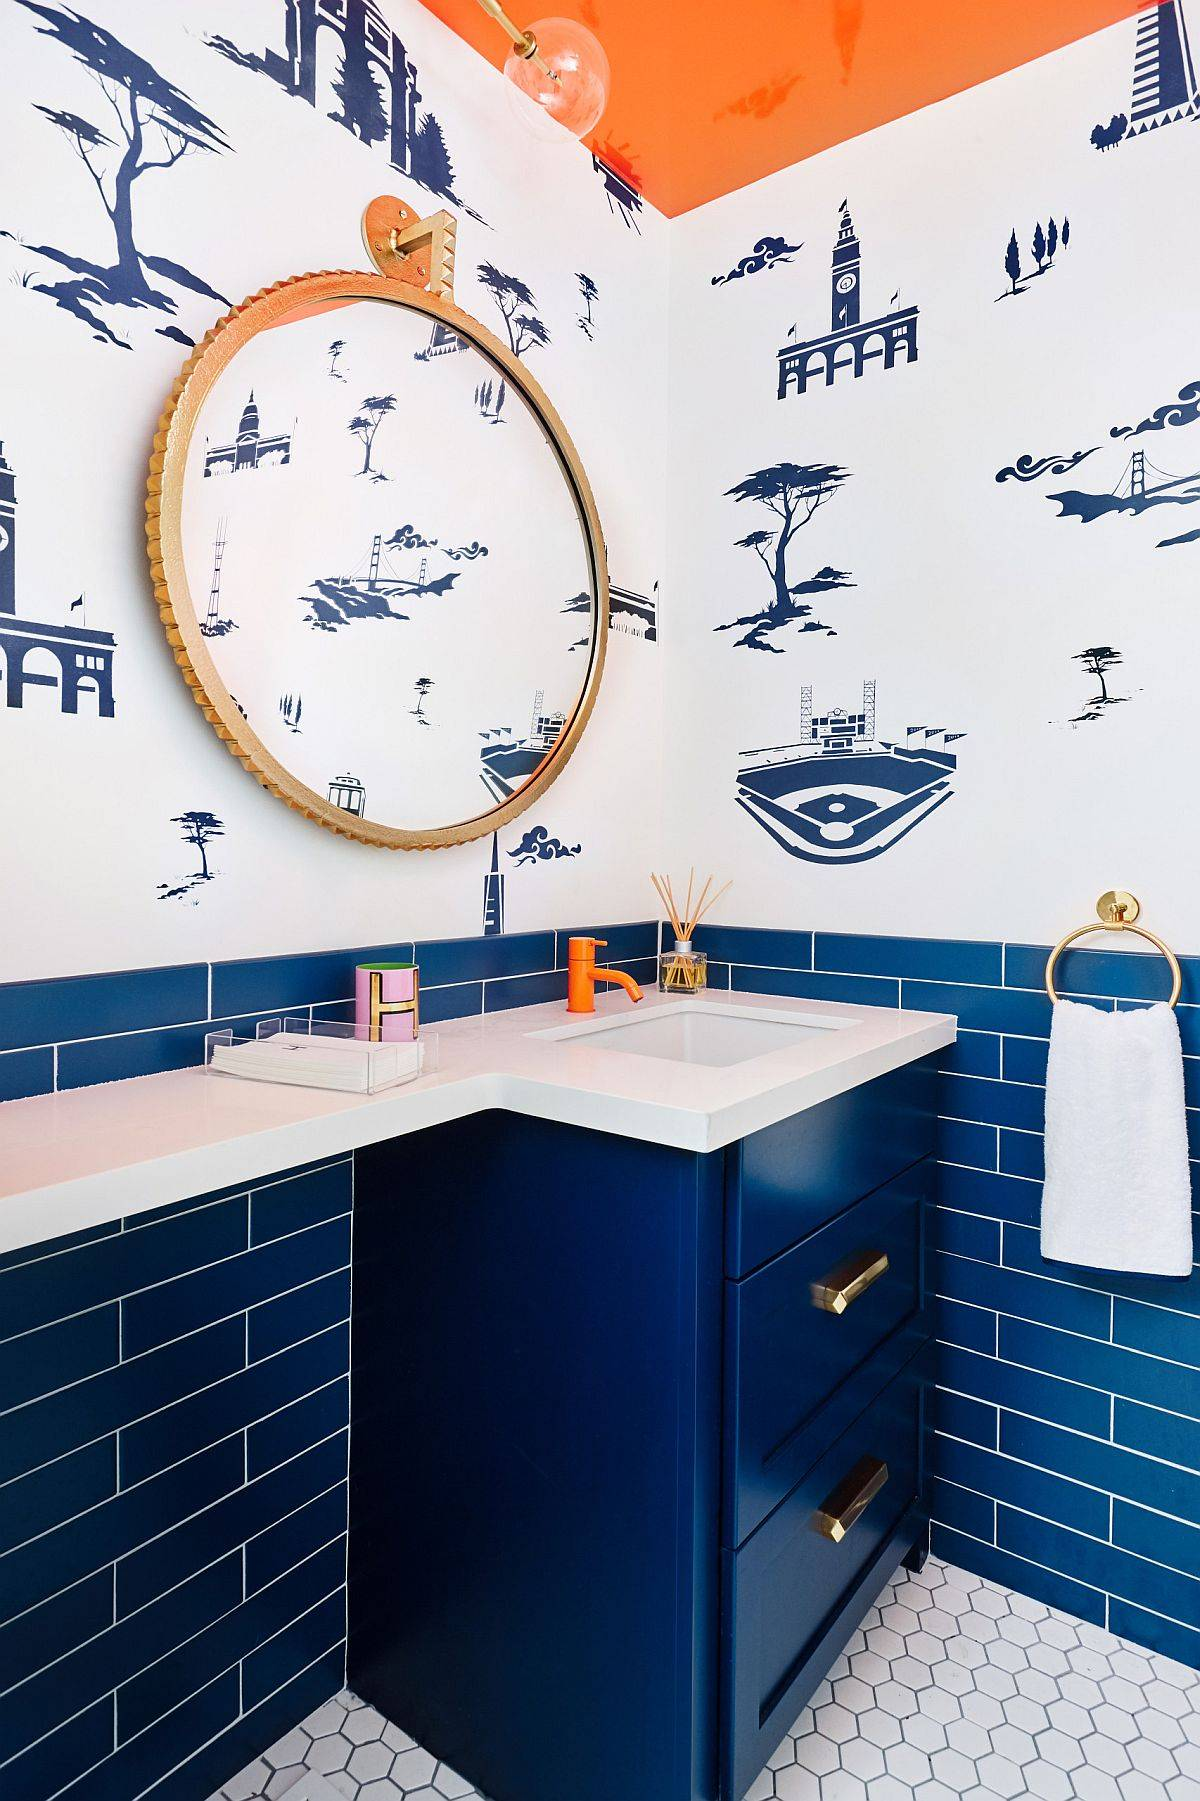 Custom-blue-cabinet-tiles-and-a-wallpaper-with-midcentury-vibe-grace-this-eclectic-powder-room-96452